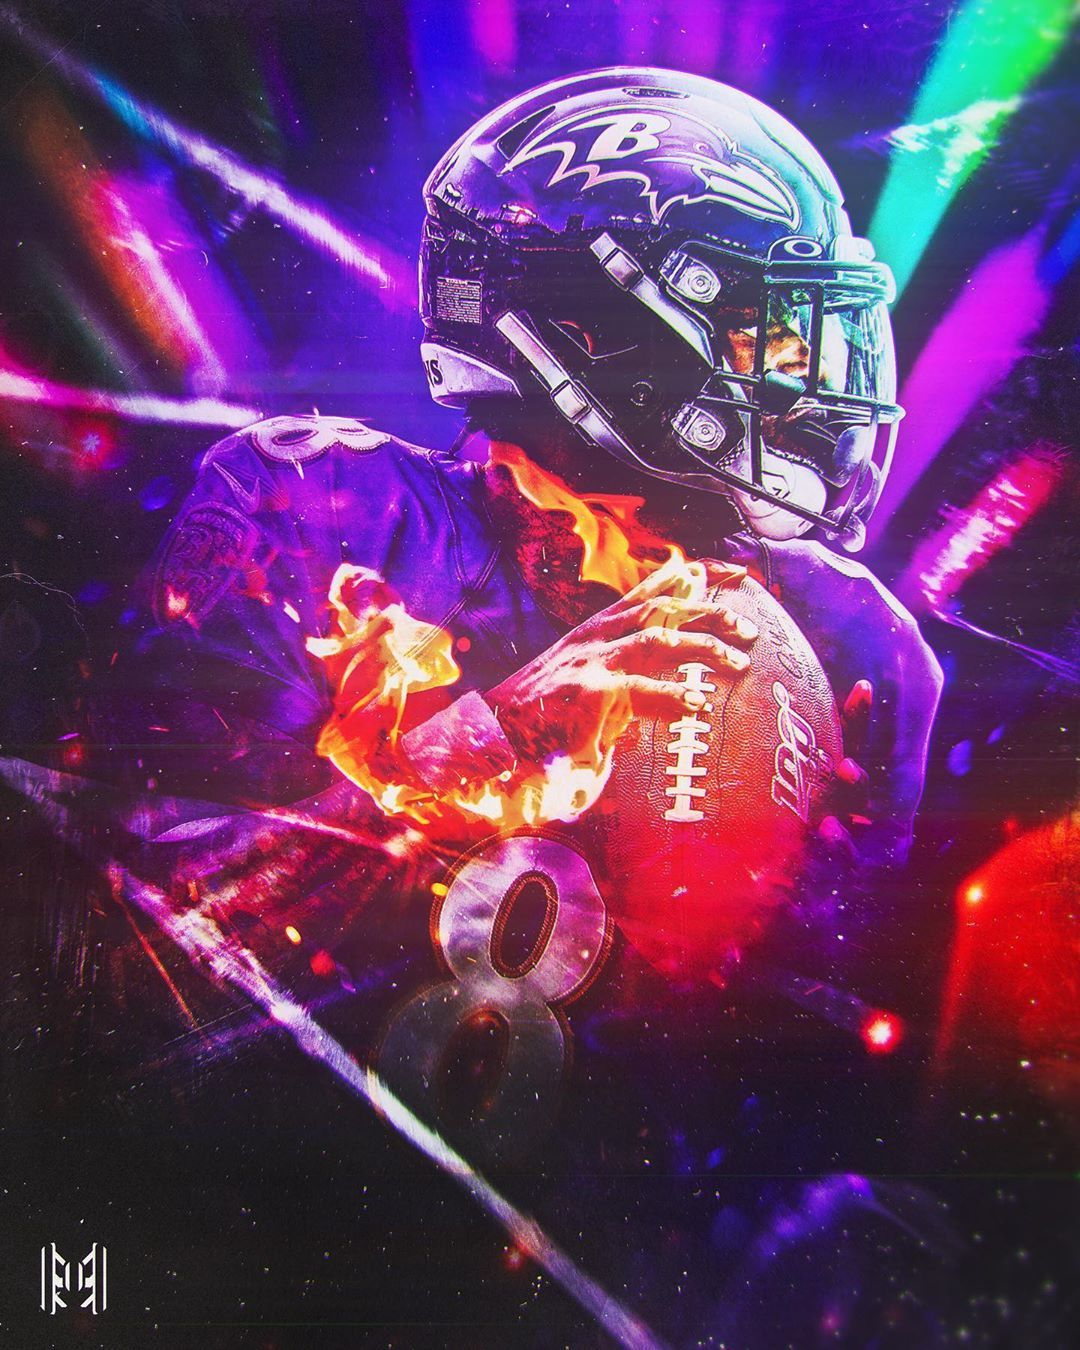 Jonathan On Instagram Mvp In 2020 Nfl Football Art Nfl Football Wallpaper Ravens Football